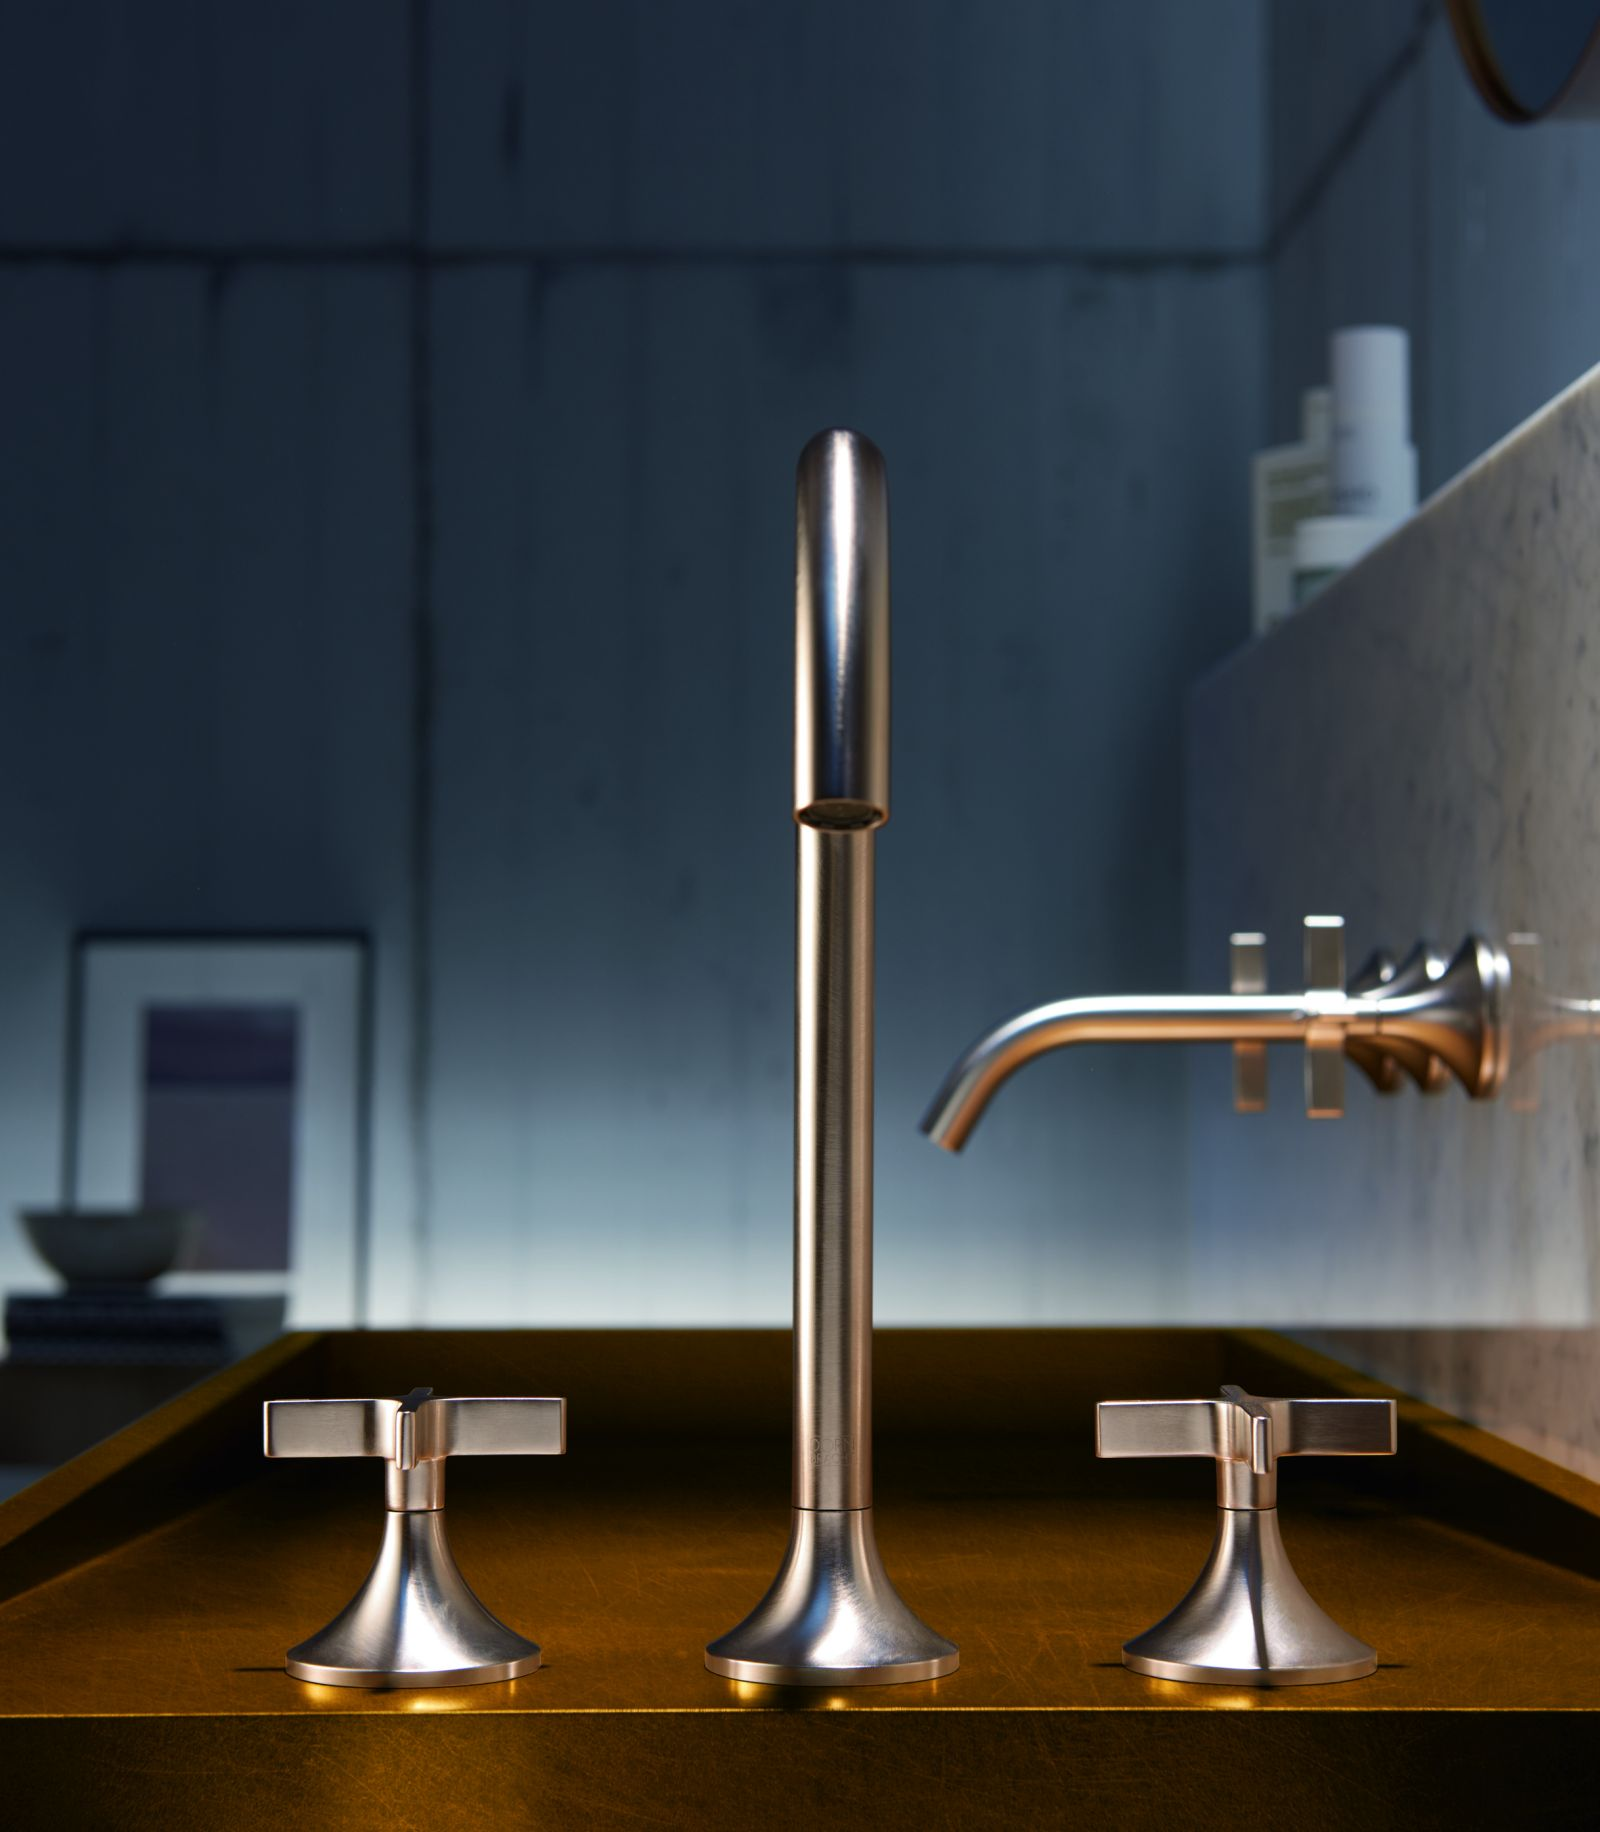 Sanitary handles made of chrome-plated die-cast zinc